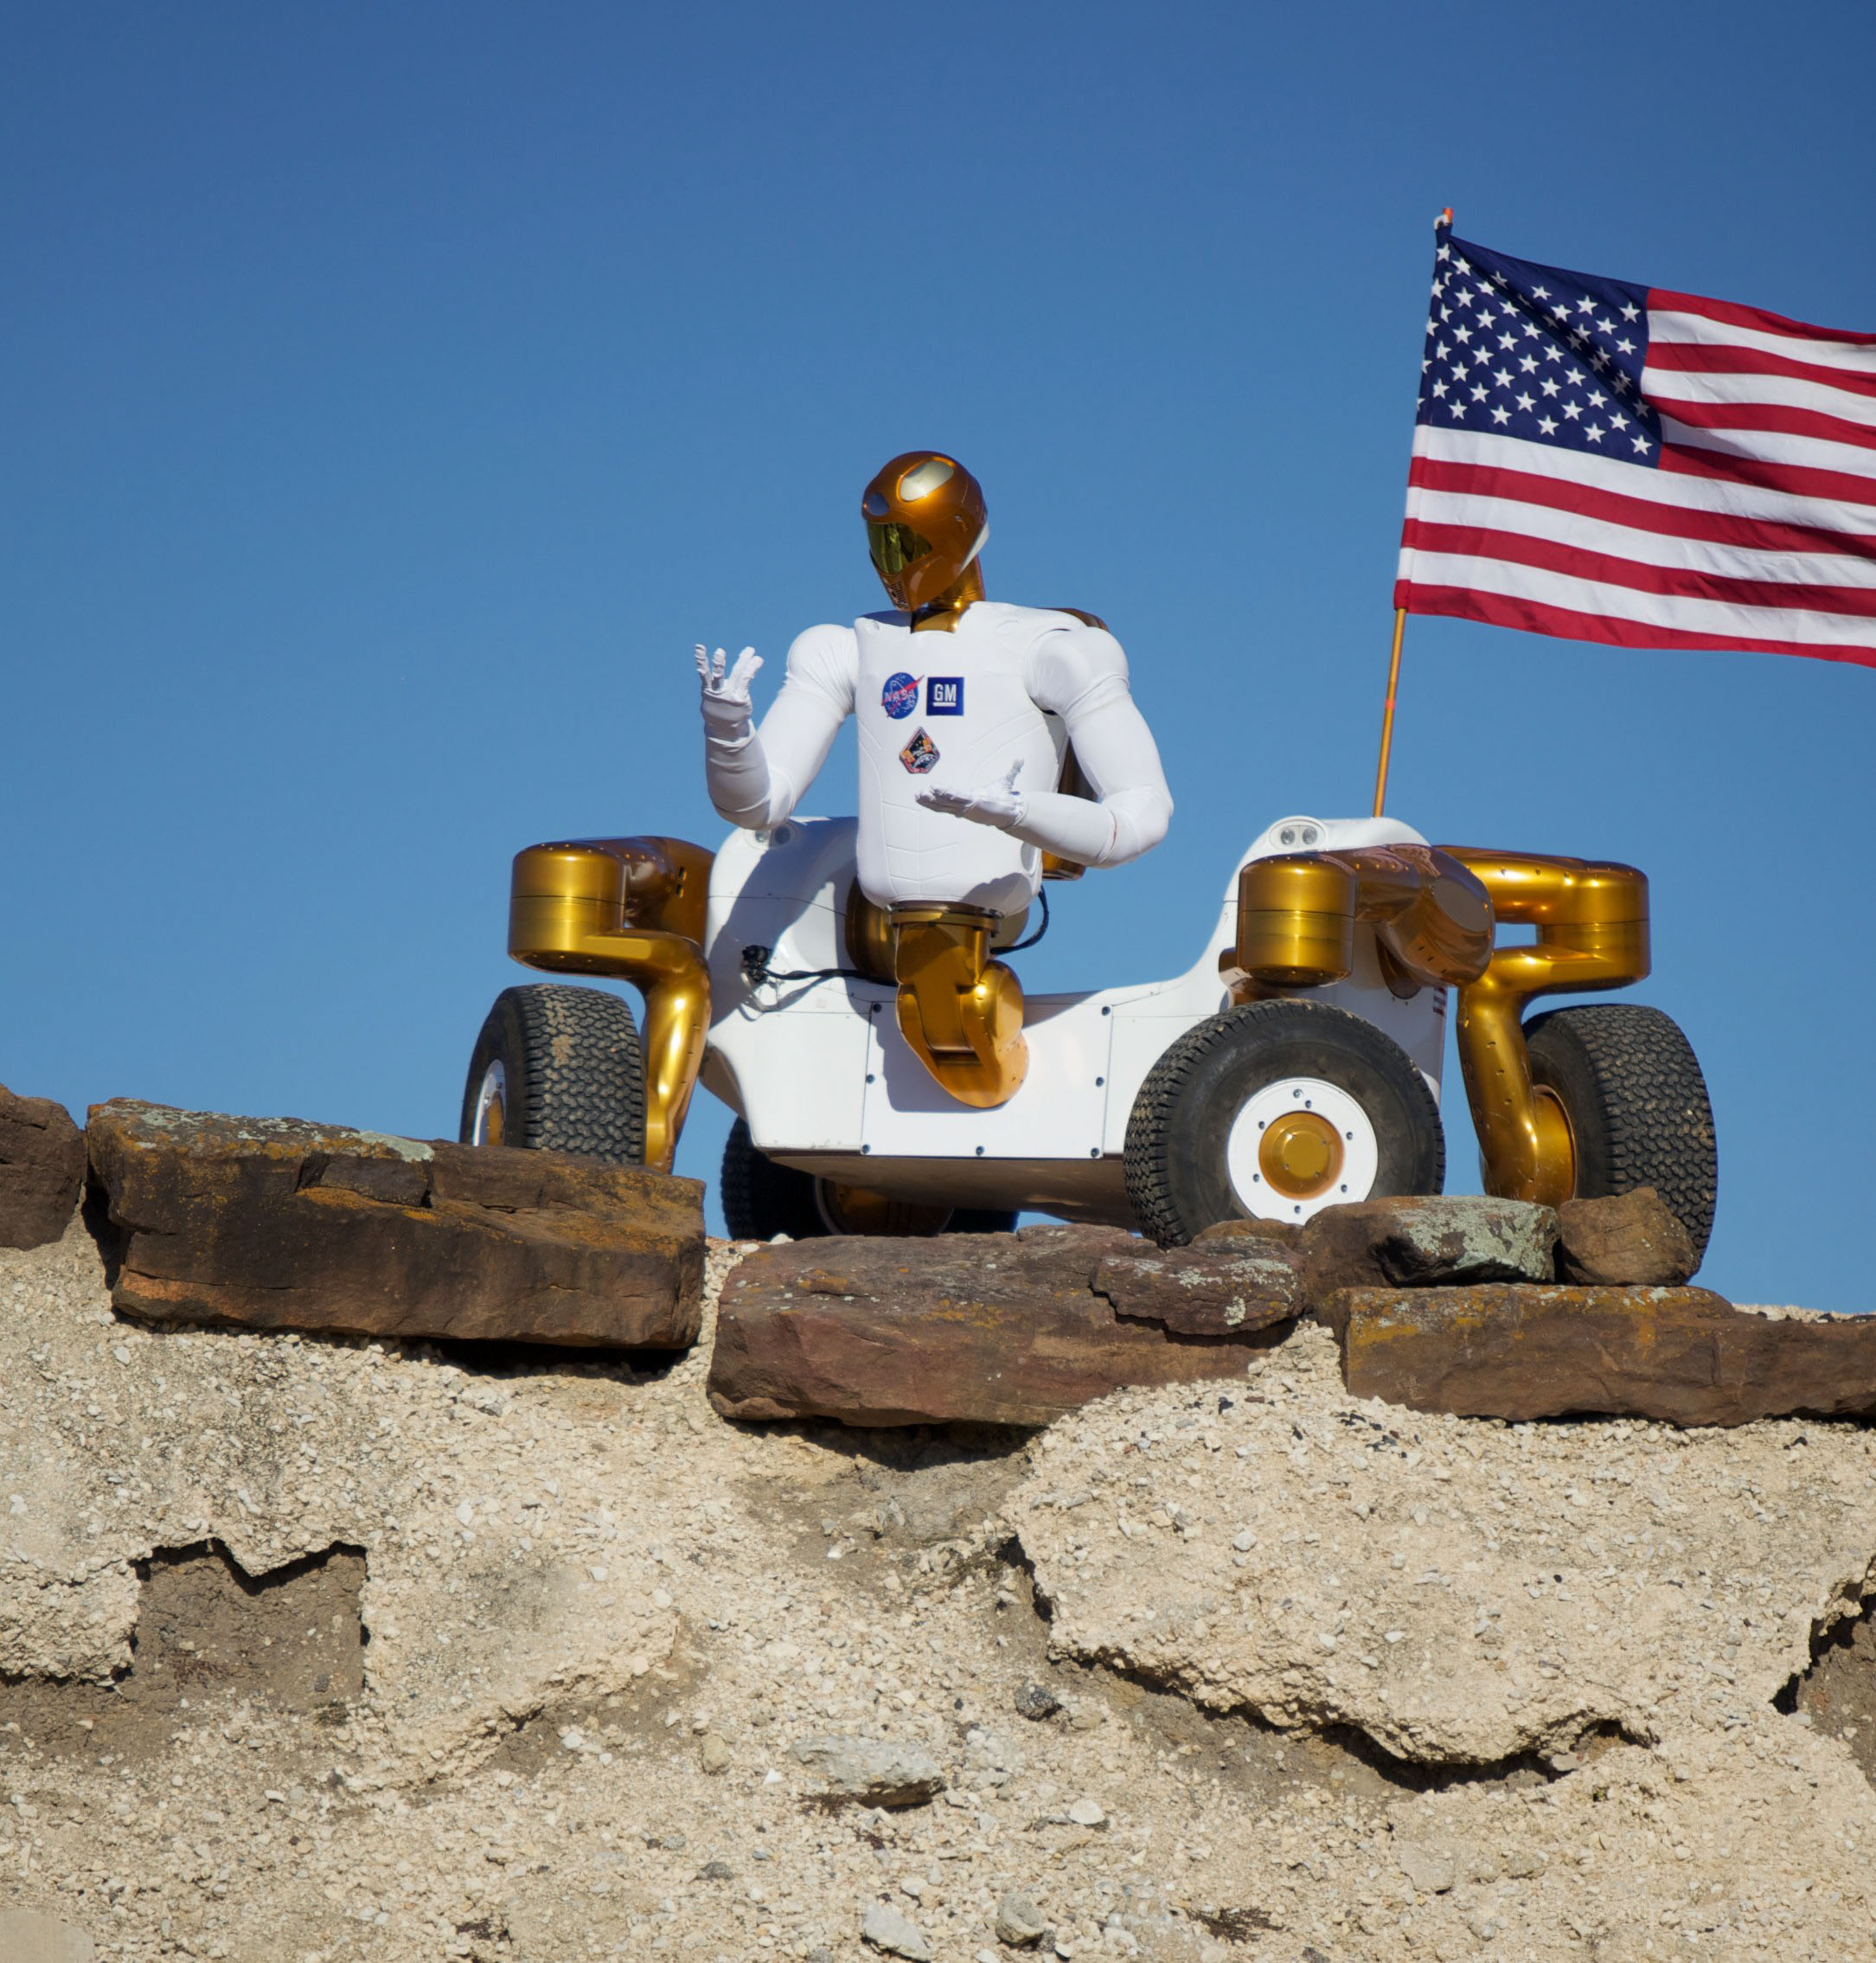 Robonaut 2, the Next Generation Dexterous Robot | NASA